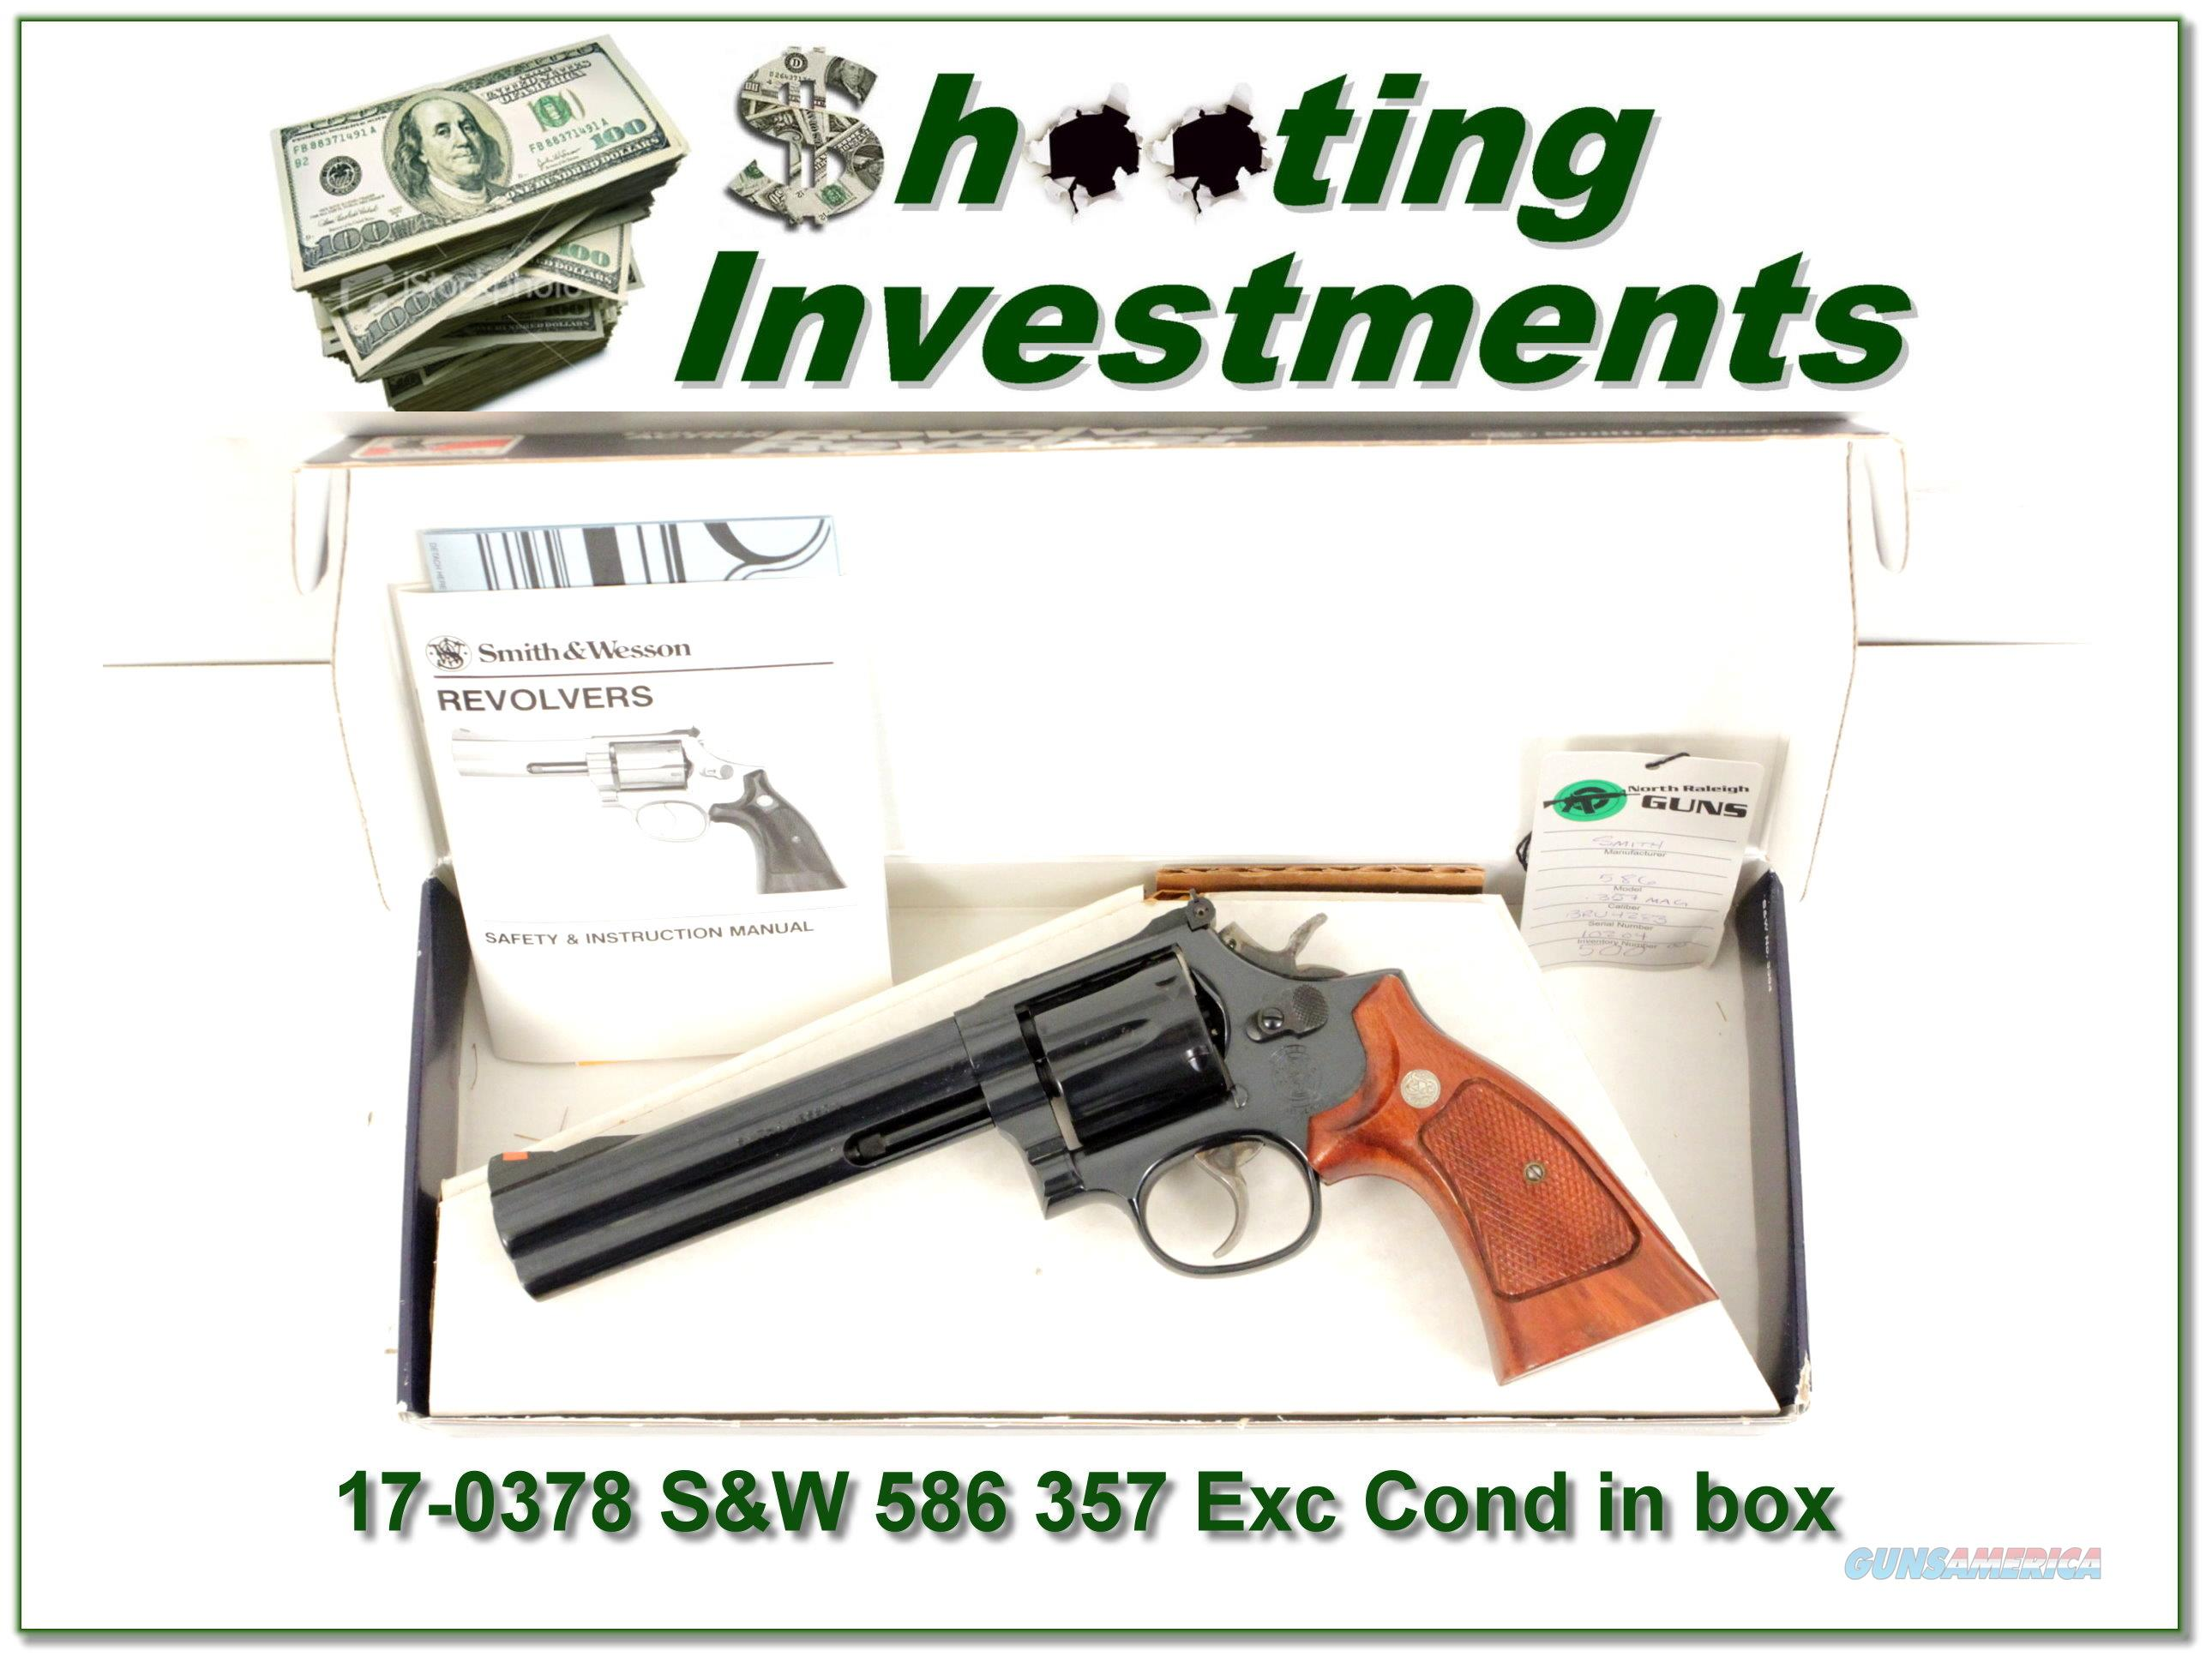 Smith & Wesson 586 6in 357 Exc Cond in box!  Guns > Pistols > Smith & Wesson Revolvers > Full Frame Revolver